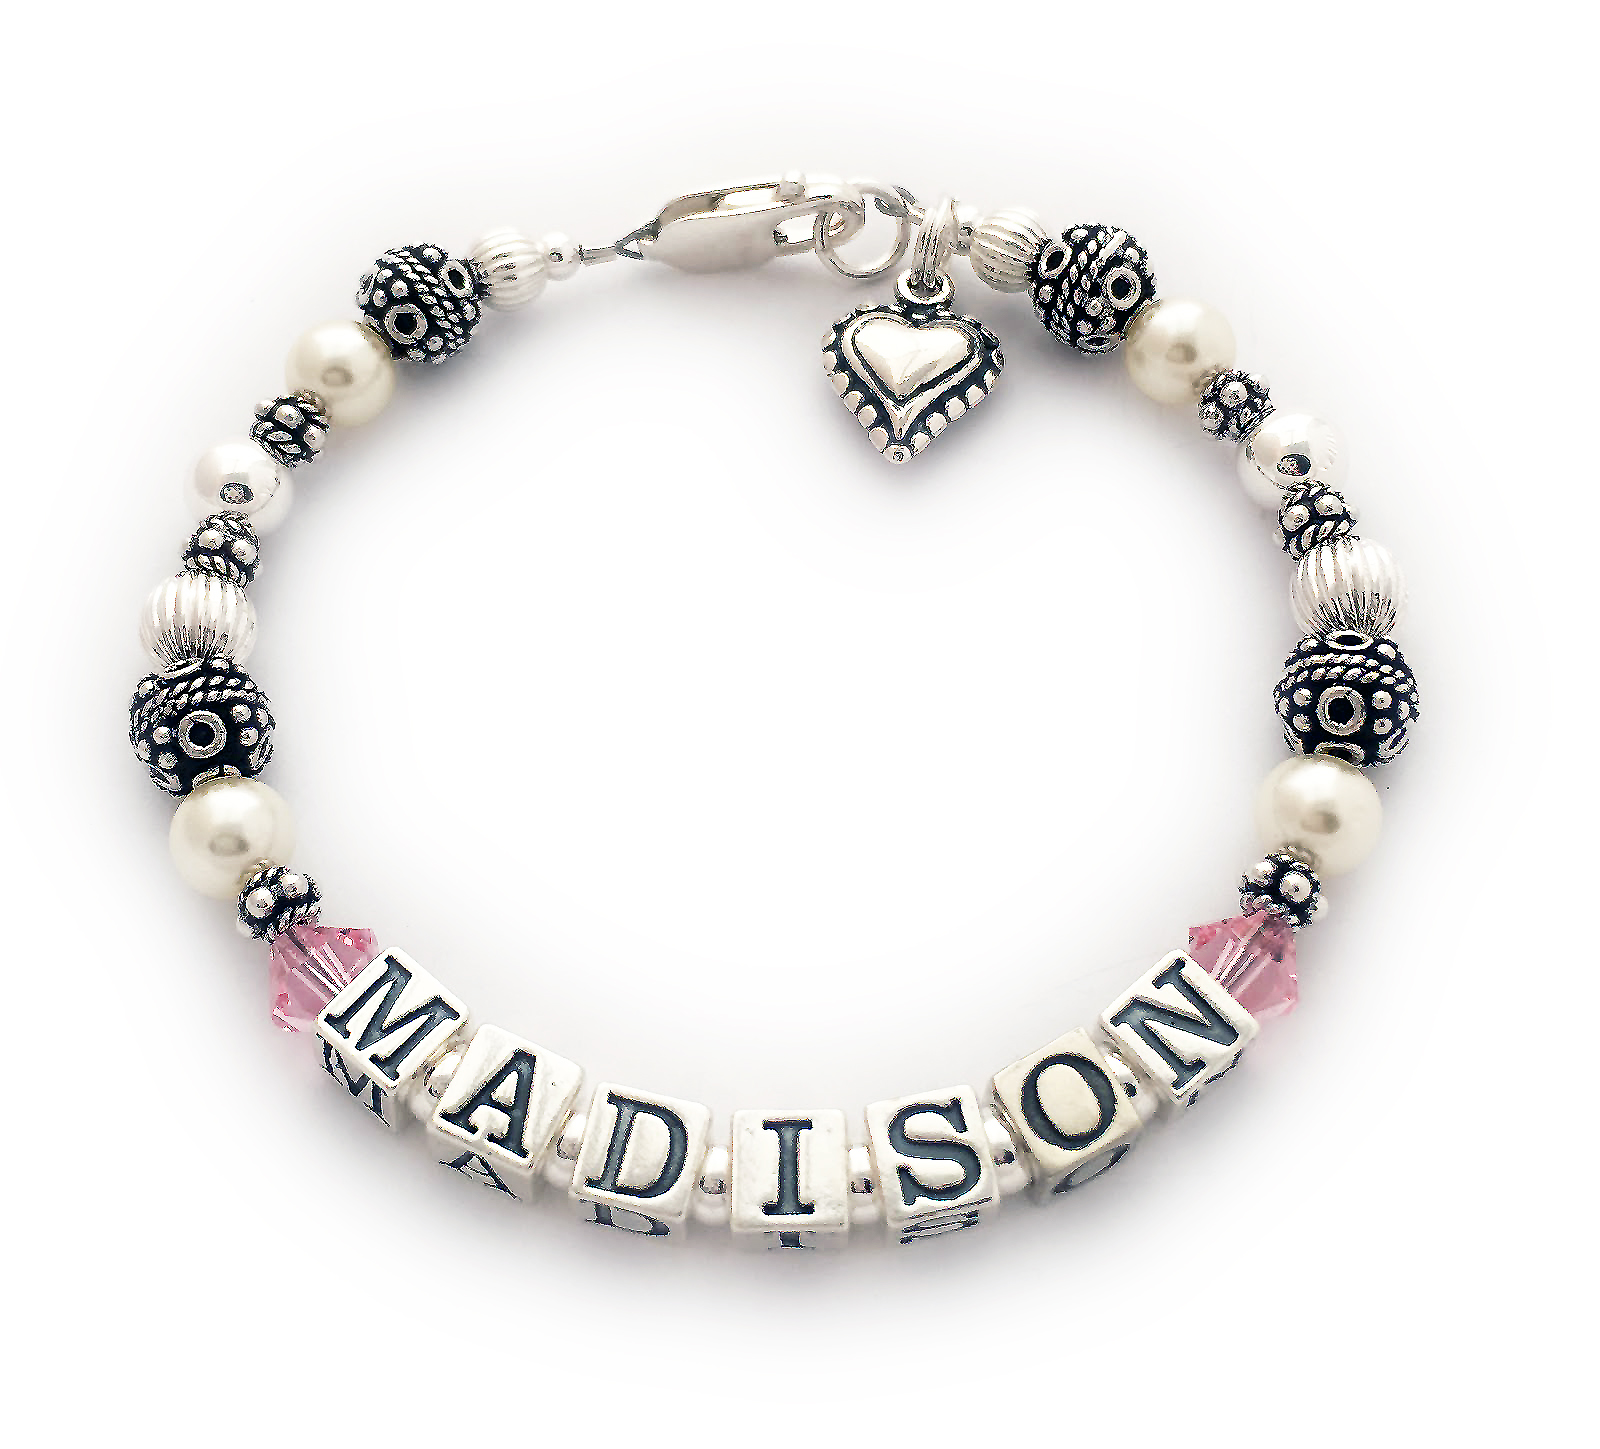 This is a 1 string Mothers Name Bracelet with MADISON. They added free Swarovski birthstone crystals before and after MADISON. They also added a Bead Heart Charm. It is shown with one of my free beautifully simple Lobster claw clasps. JBL-PS1-1string